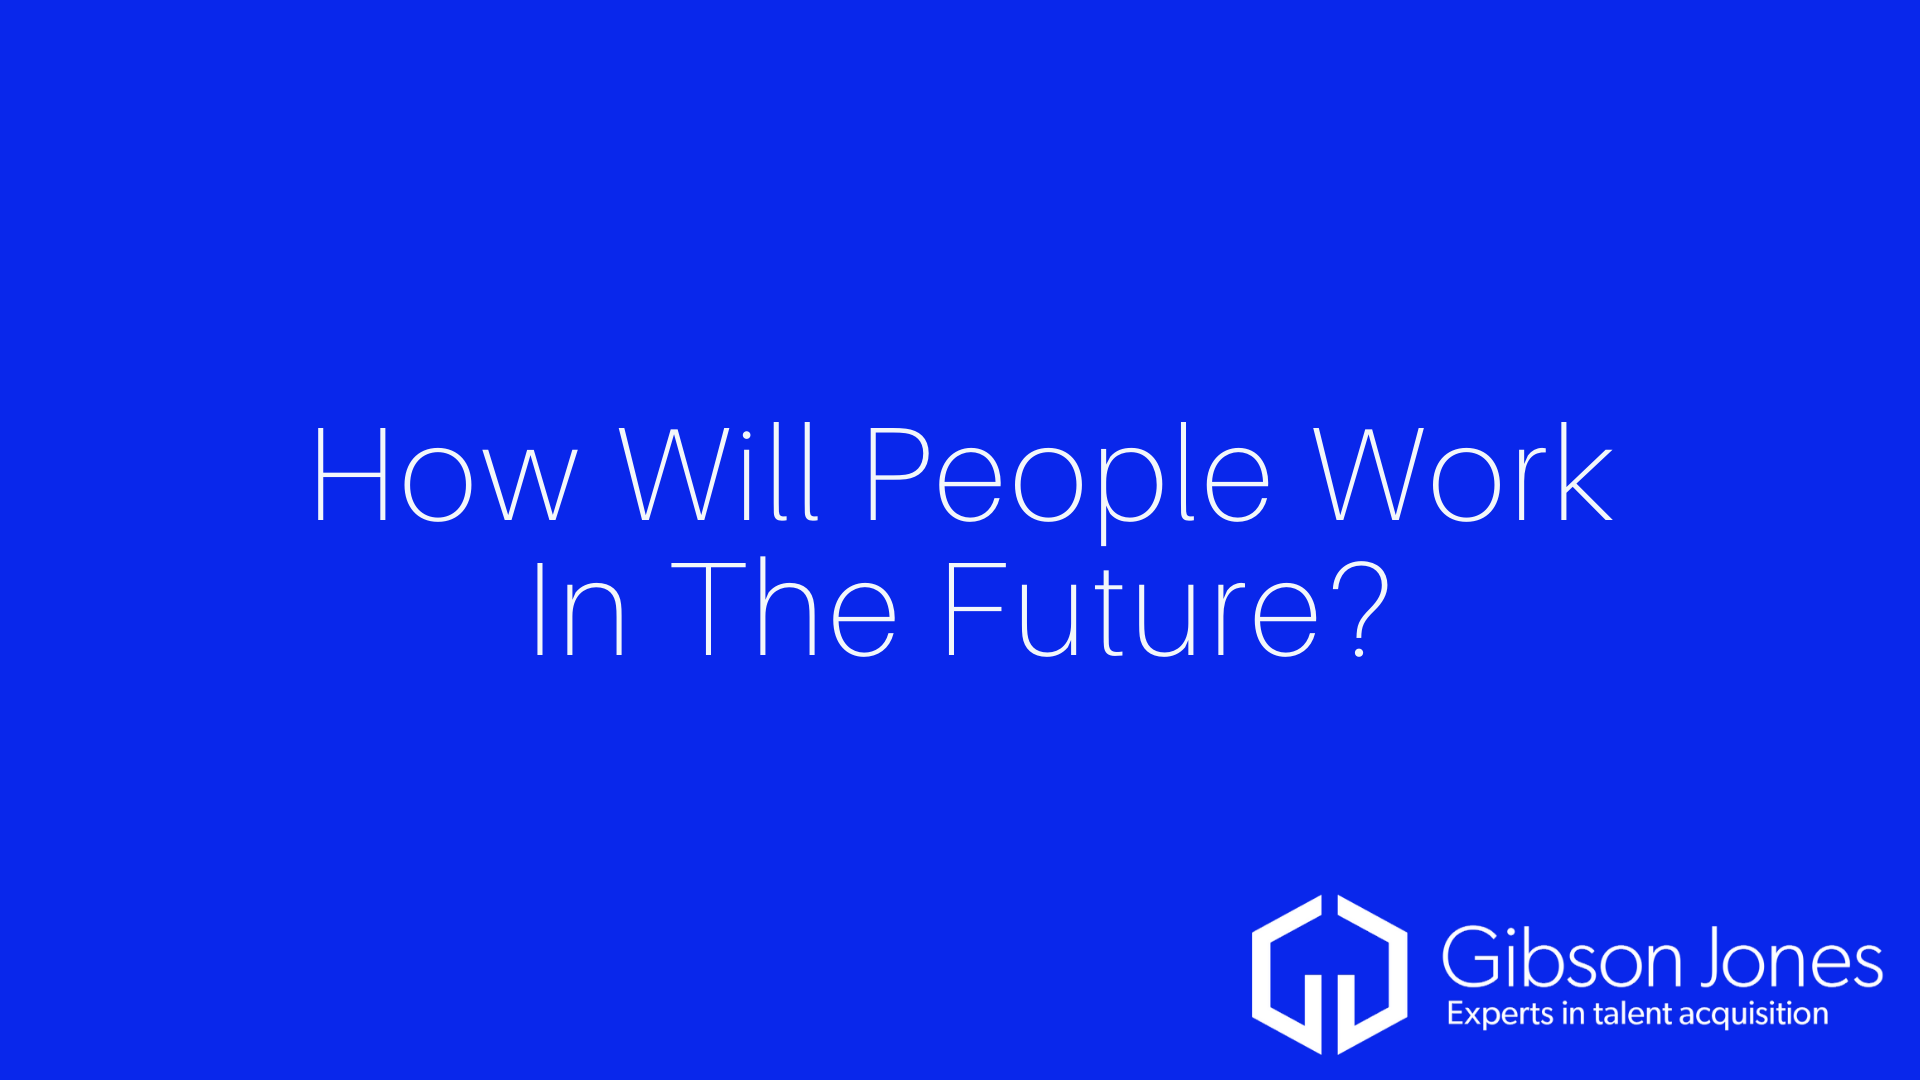 How Will The Workplace Evolve?